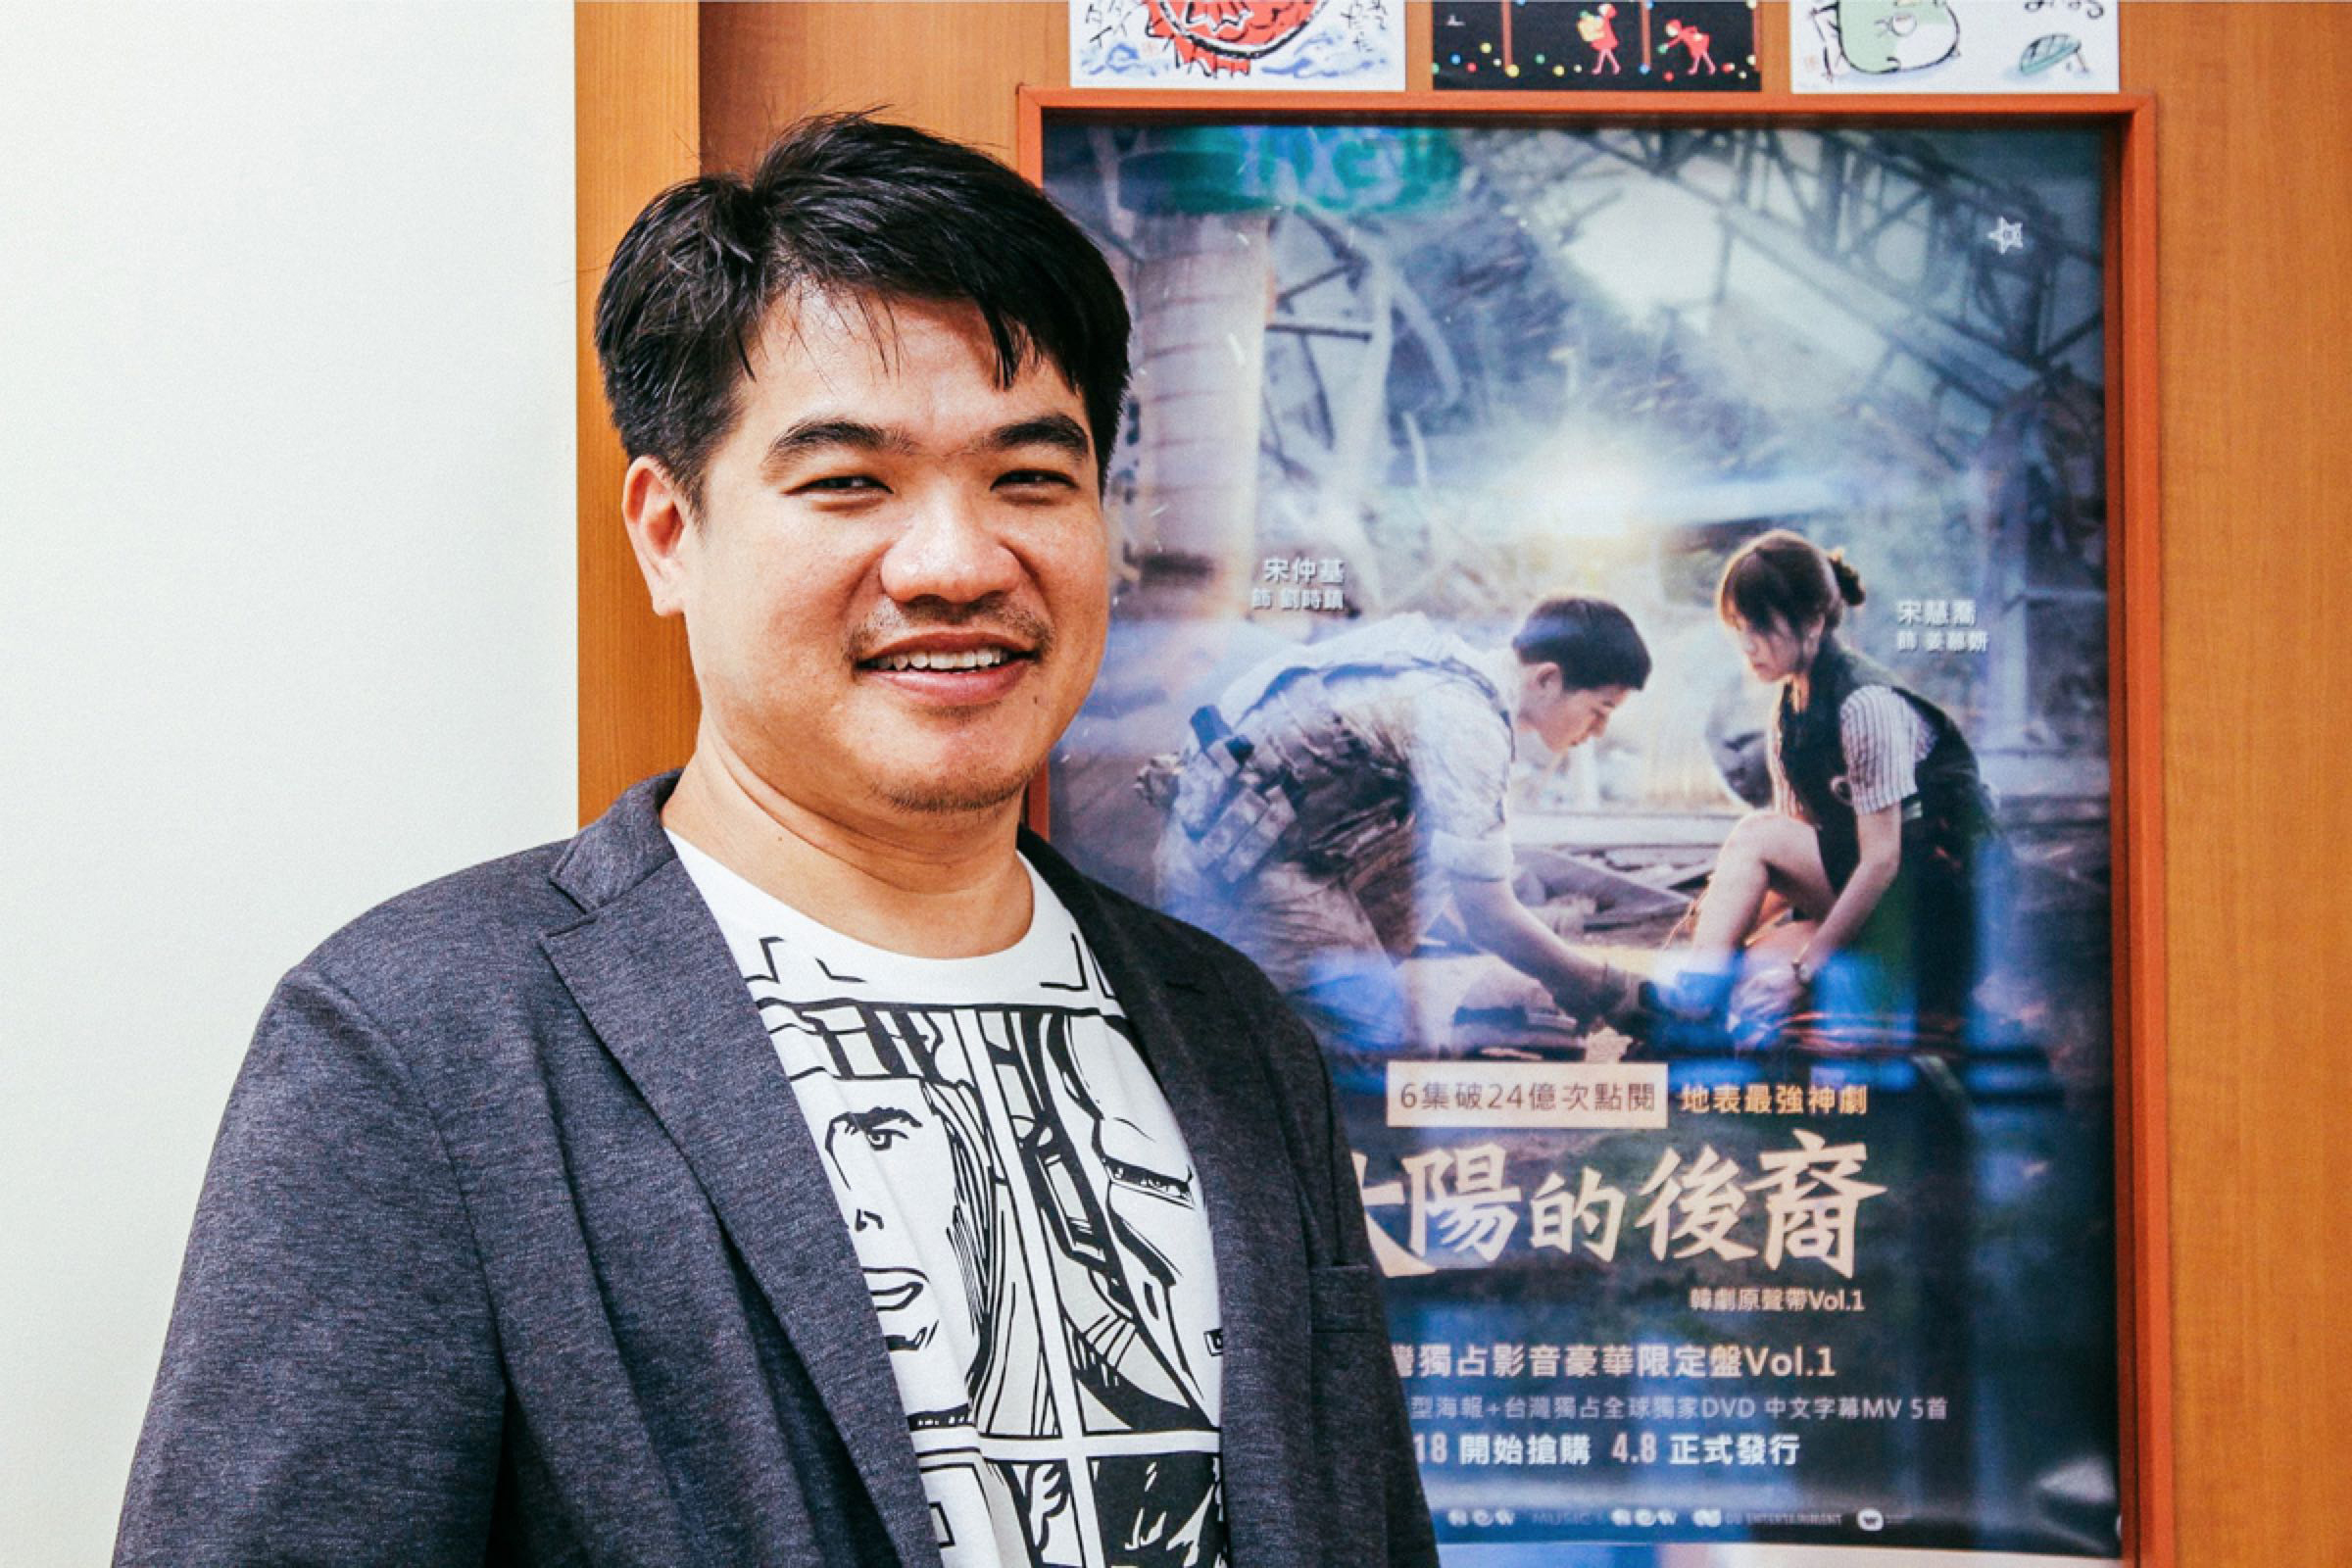 Dr. Liew has been researching on Korean culture since 2005, and is currently co-writing a research paper on Korean television programs and food culture. PHOTO: BENEDICT YEO